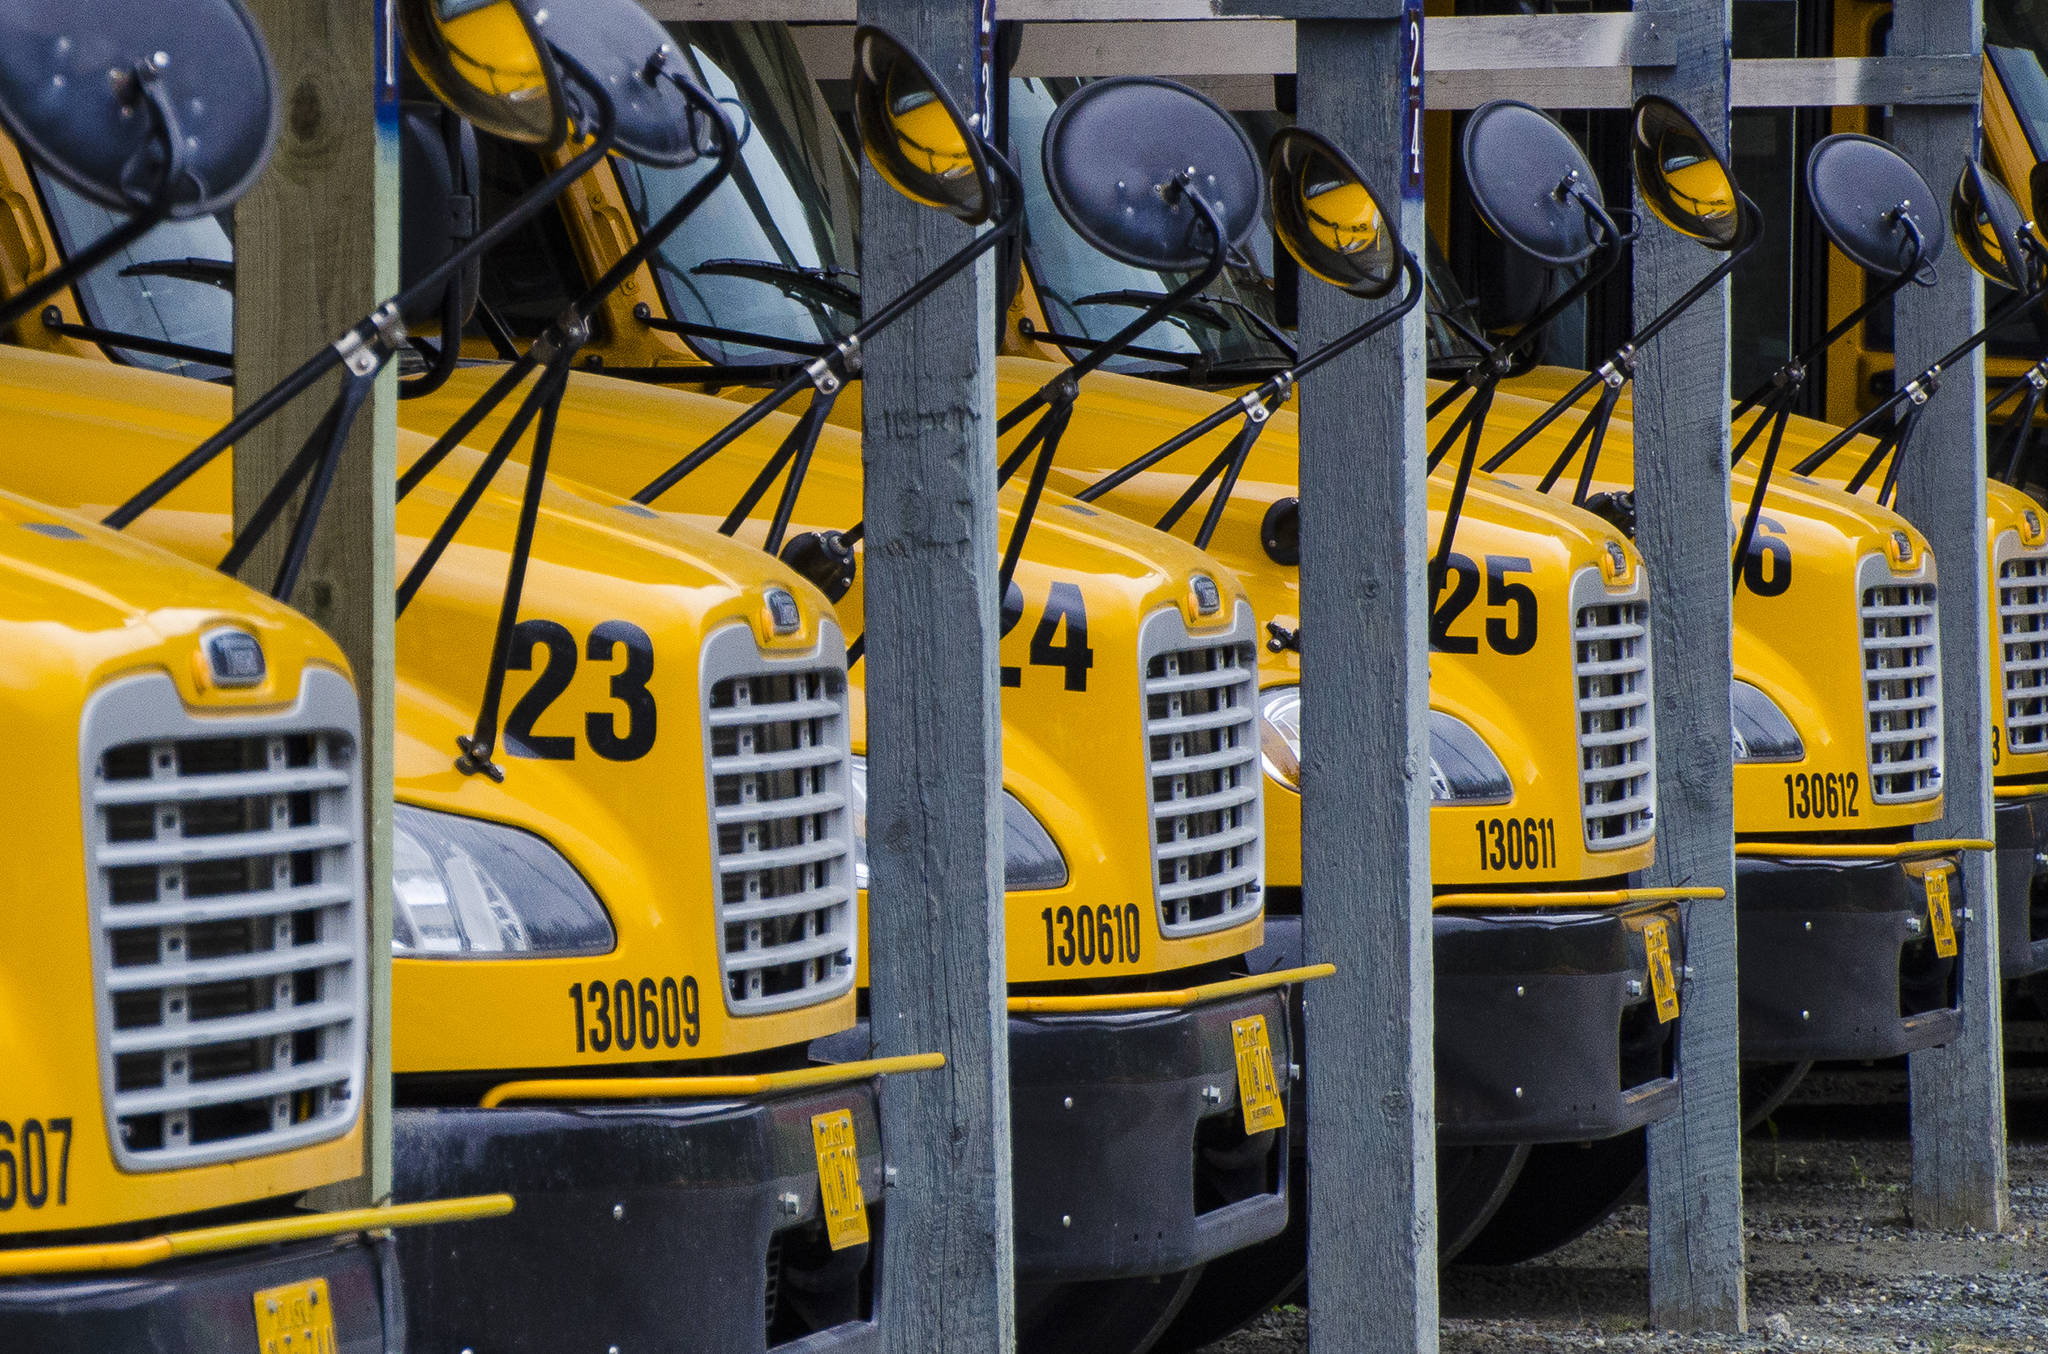 School buses sit idle at the First Student lot on Mendenhall Loop Road on Thursday. Buses are used during summer months for summer school.